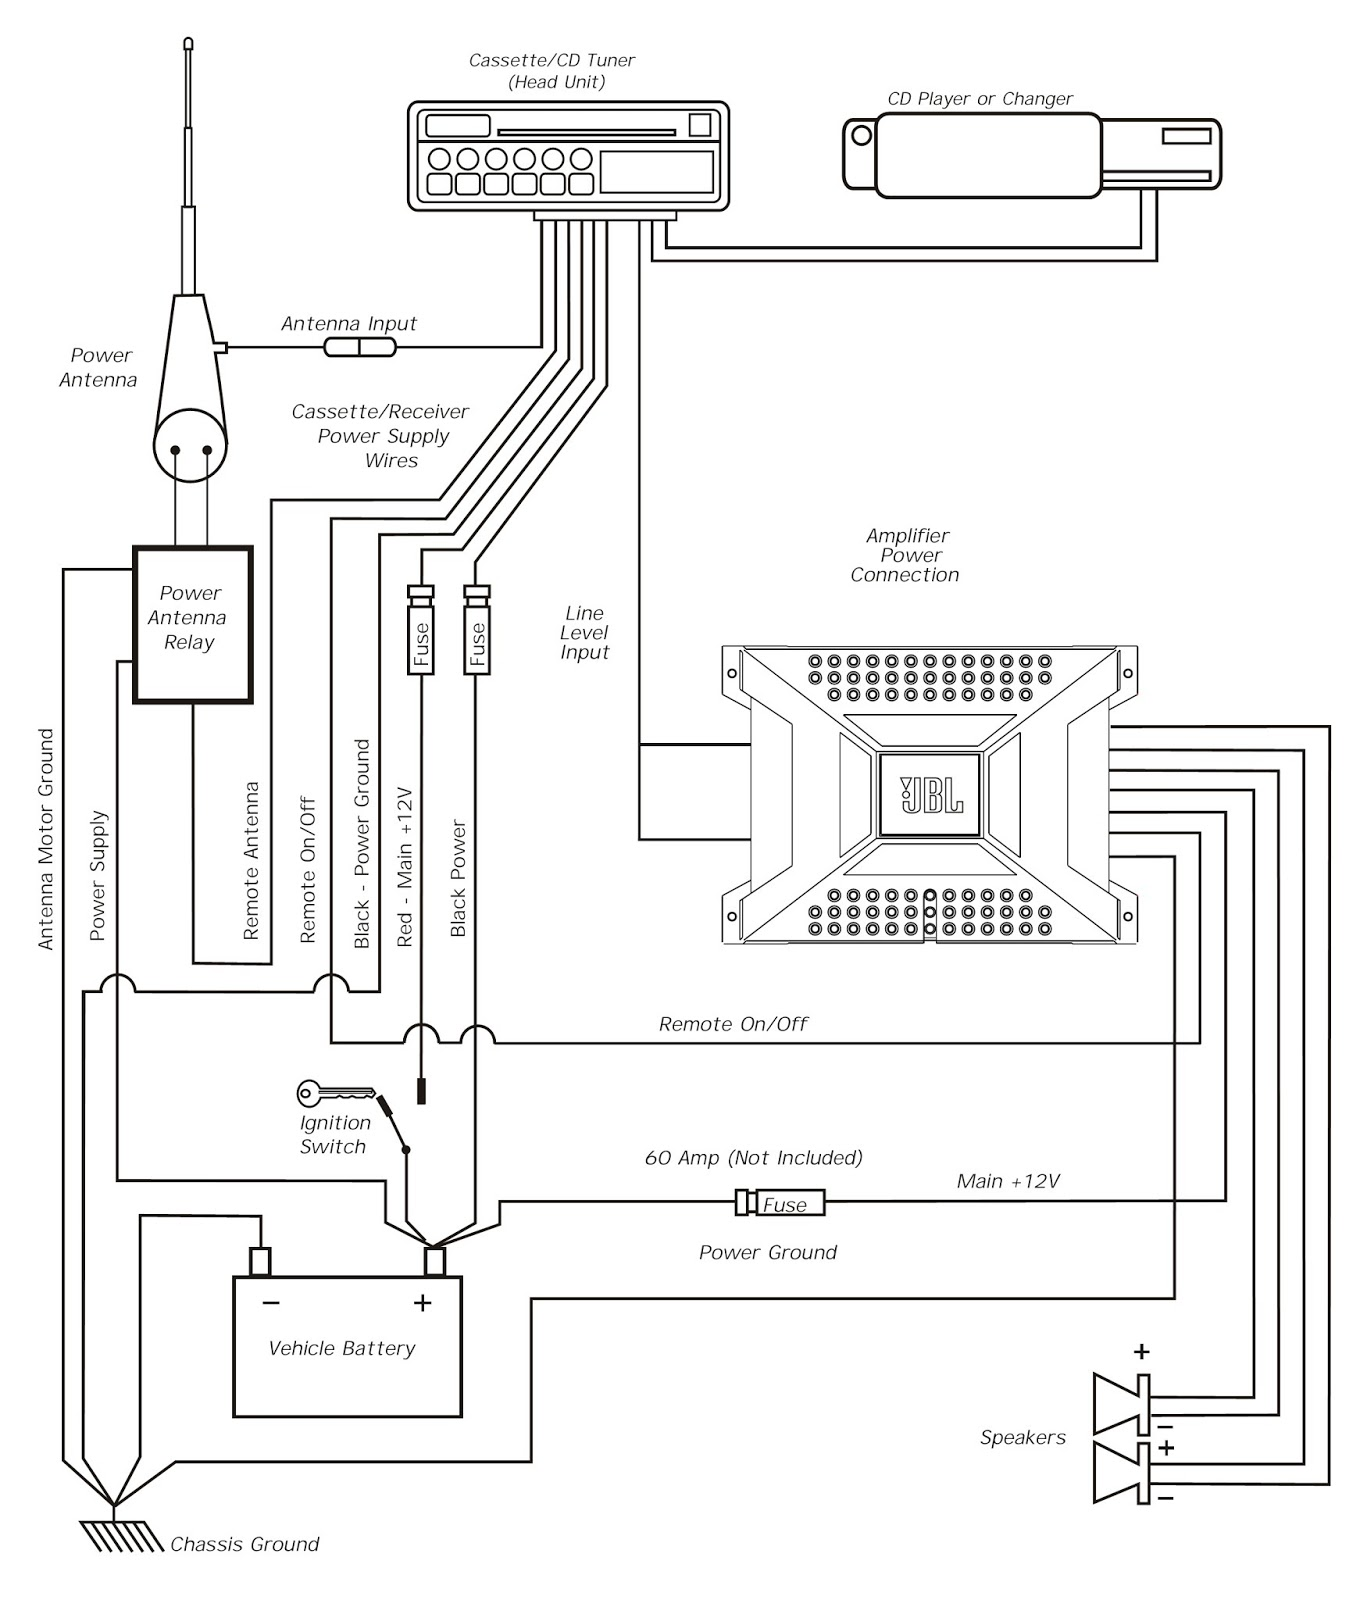 wiring.bmp amplifier wiring diagram readingrat net car amplifier wiring diagram installation at webbmarketing.co